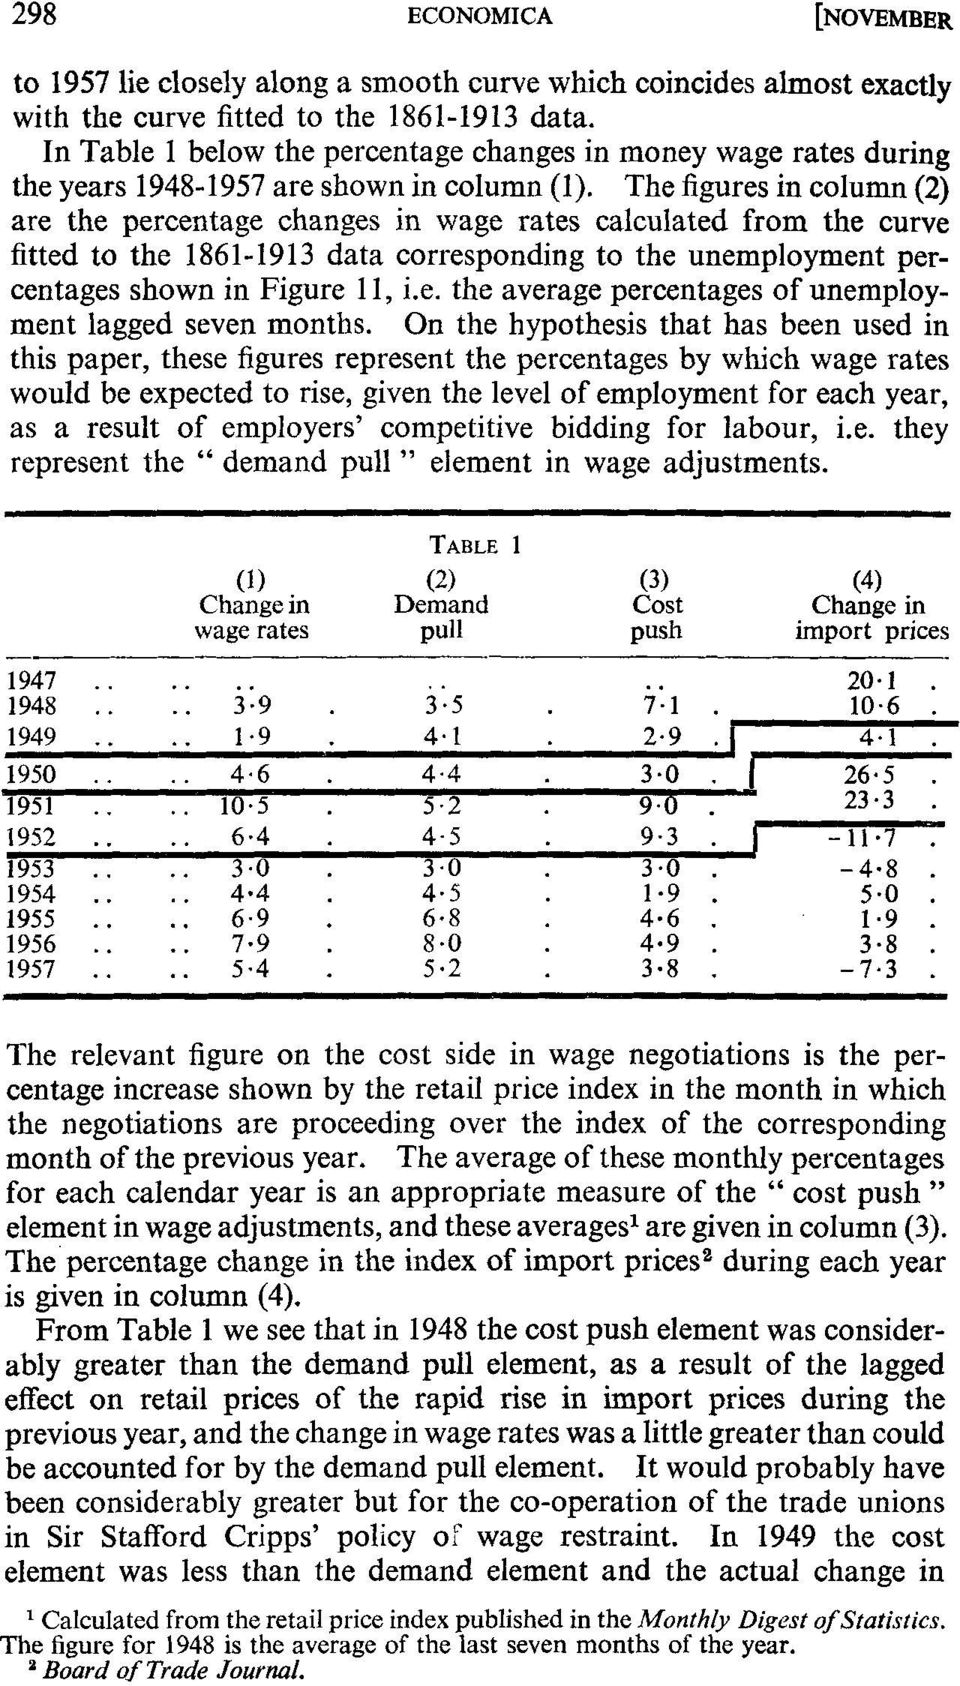 The figures in column (2) are the percentage changes in wage rates calculated from the curve fitted to the 1861-1913 data corresponding to the unemployment percentages shown in Figure 11, i.e. the average percentages of unemployment lagged seven months.